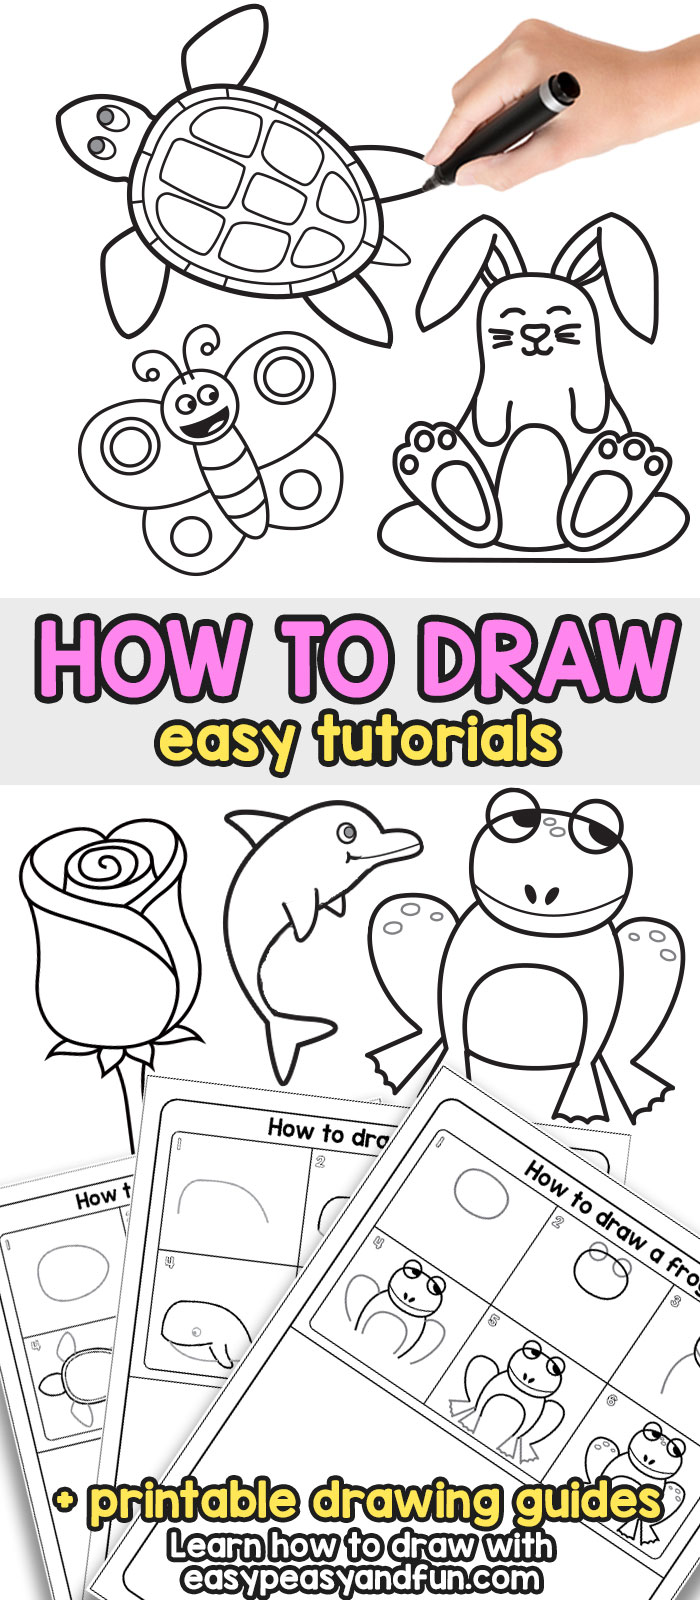 What can you draw for children